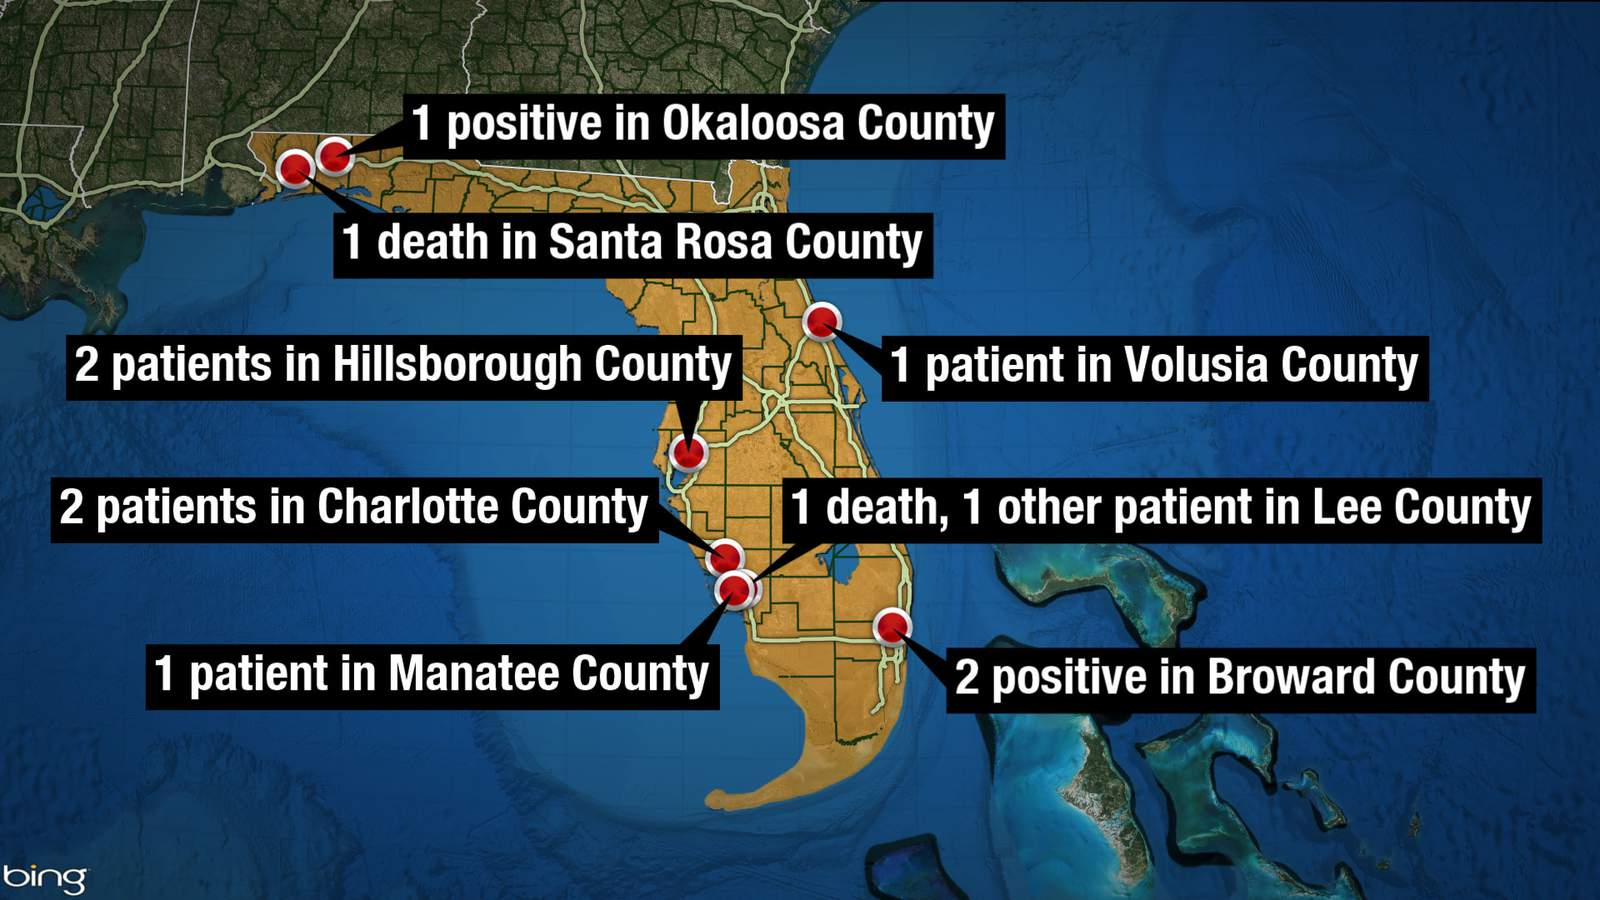 By Saturday night, the Florida Department of Health had identified 10 patients with COVID-19 and two deaths attributed to the disease.